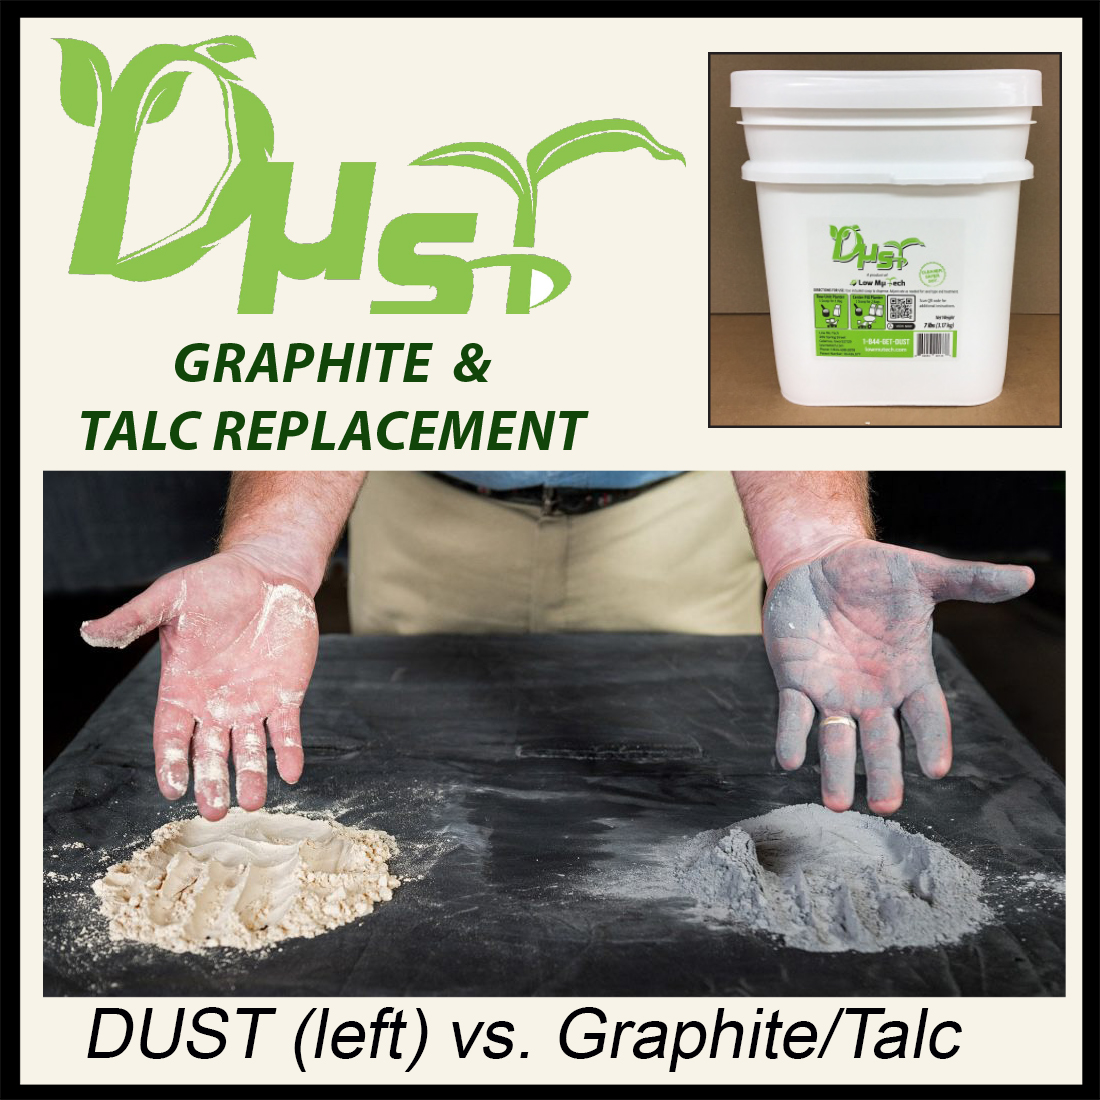 DUST - Seed and Mechanical Lubricant